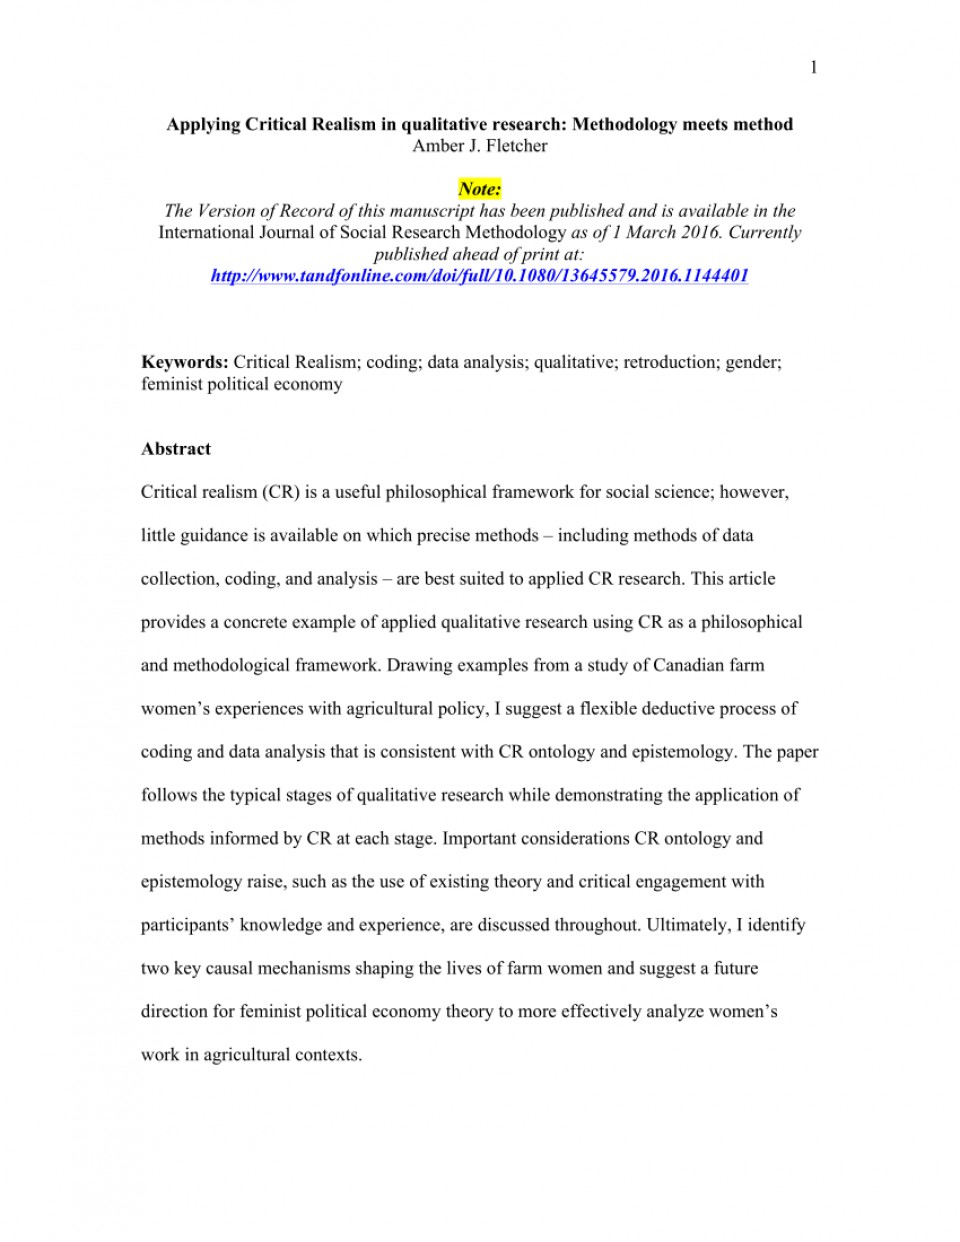 003 Research Paper How To Write Methodology For Qualitative Phenomenal The Section Of A 960